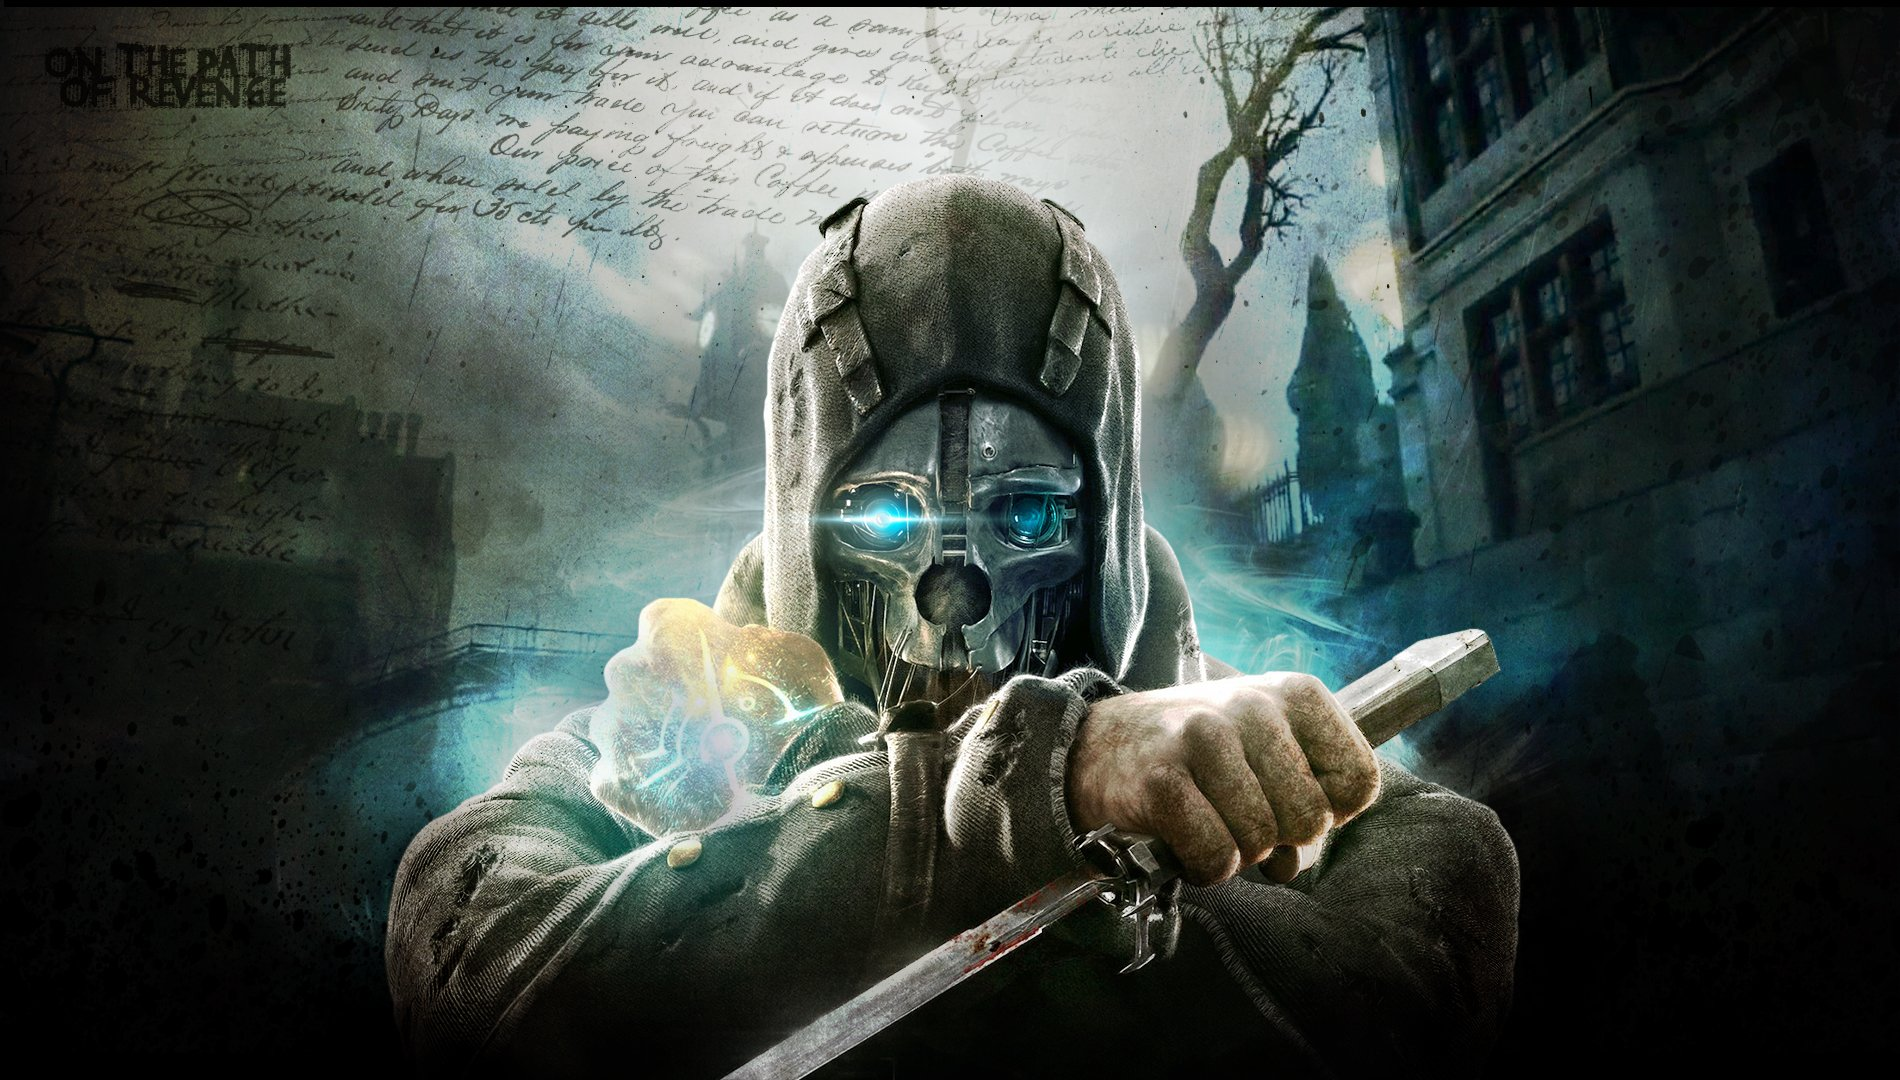 dishonored wallpaper and background image | 1900x1080 | id:346778